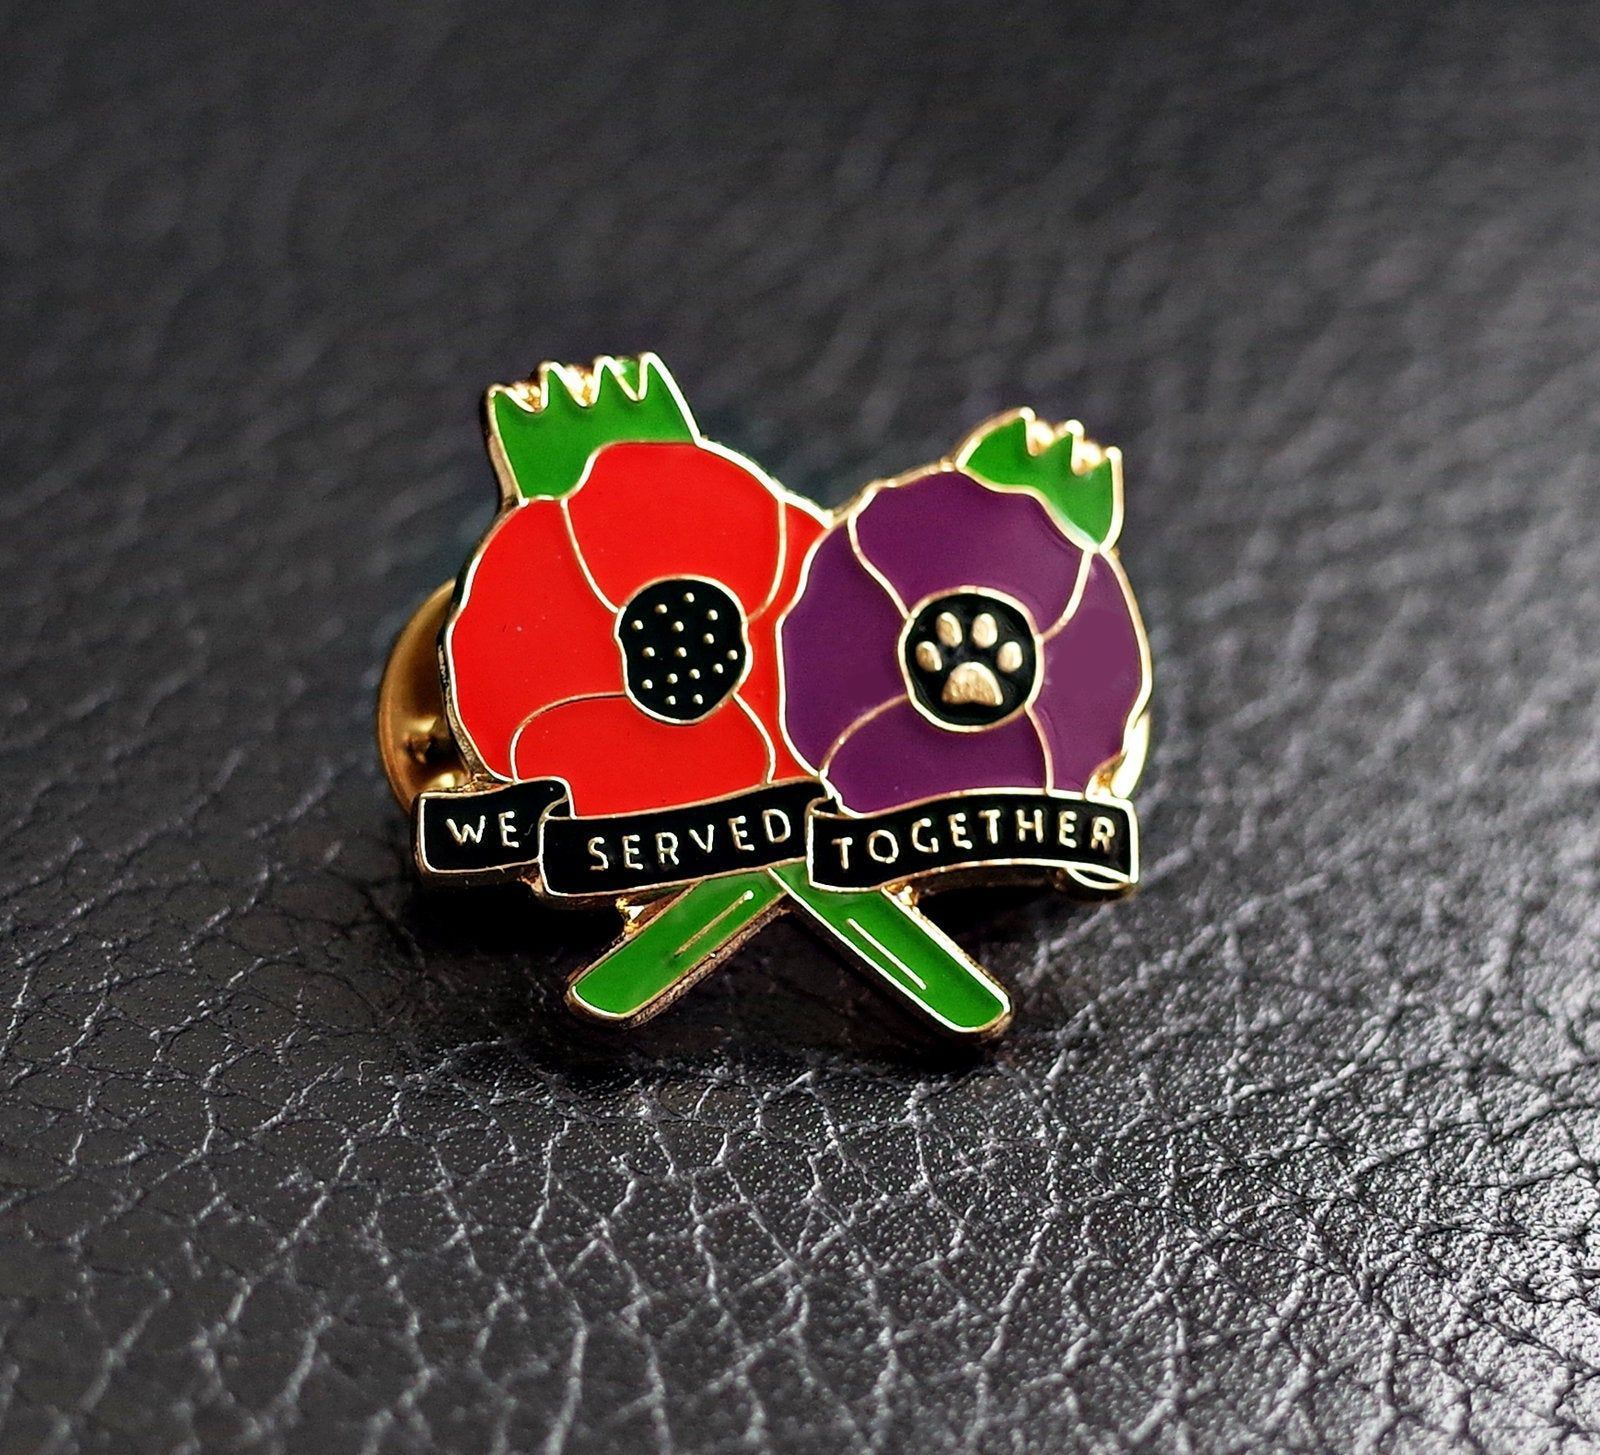 NEW CROSS LAPEL PIN ENAMEL POPPY BADGES 2019 COLLECTION METAL BRITISH US UK ARMY